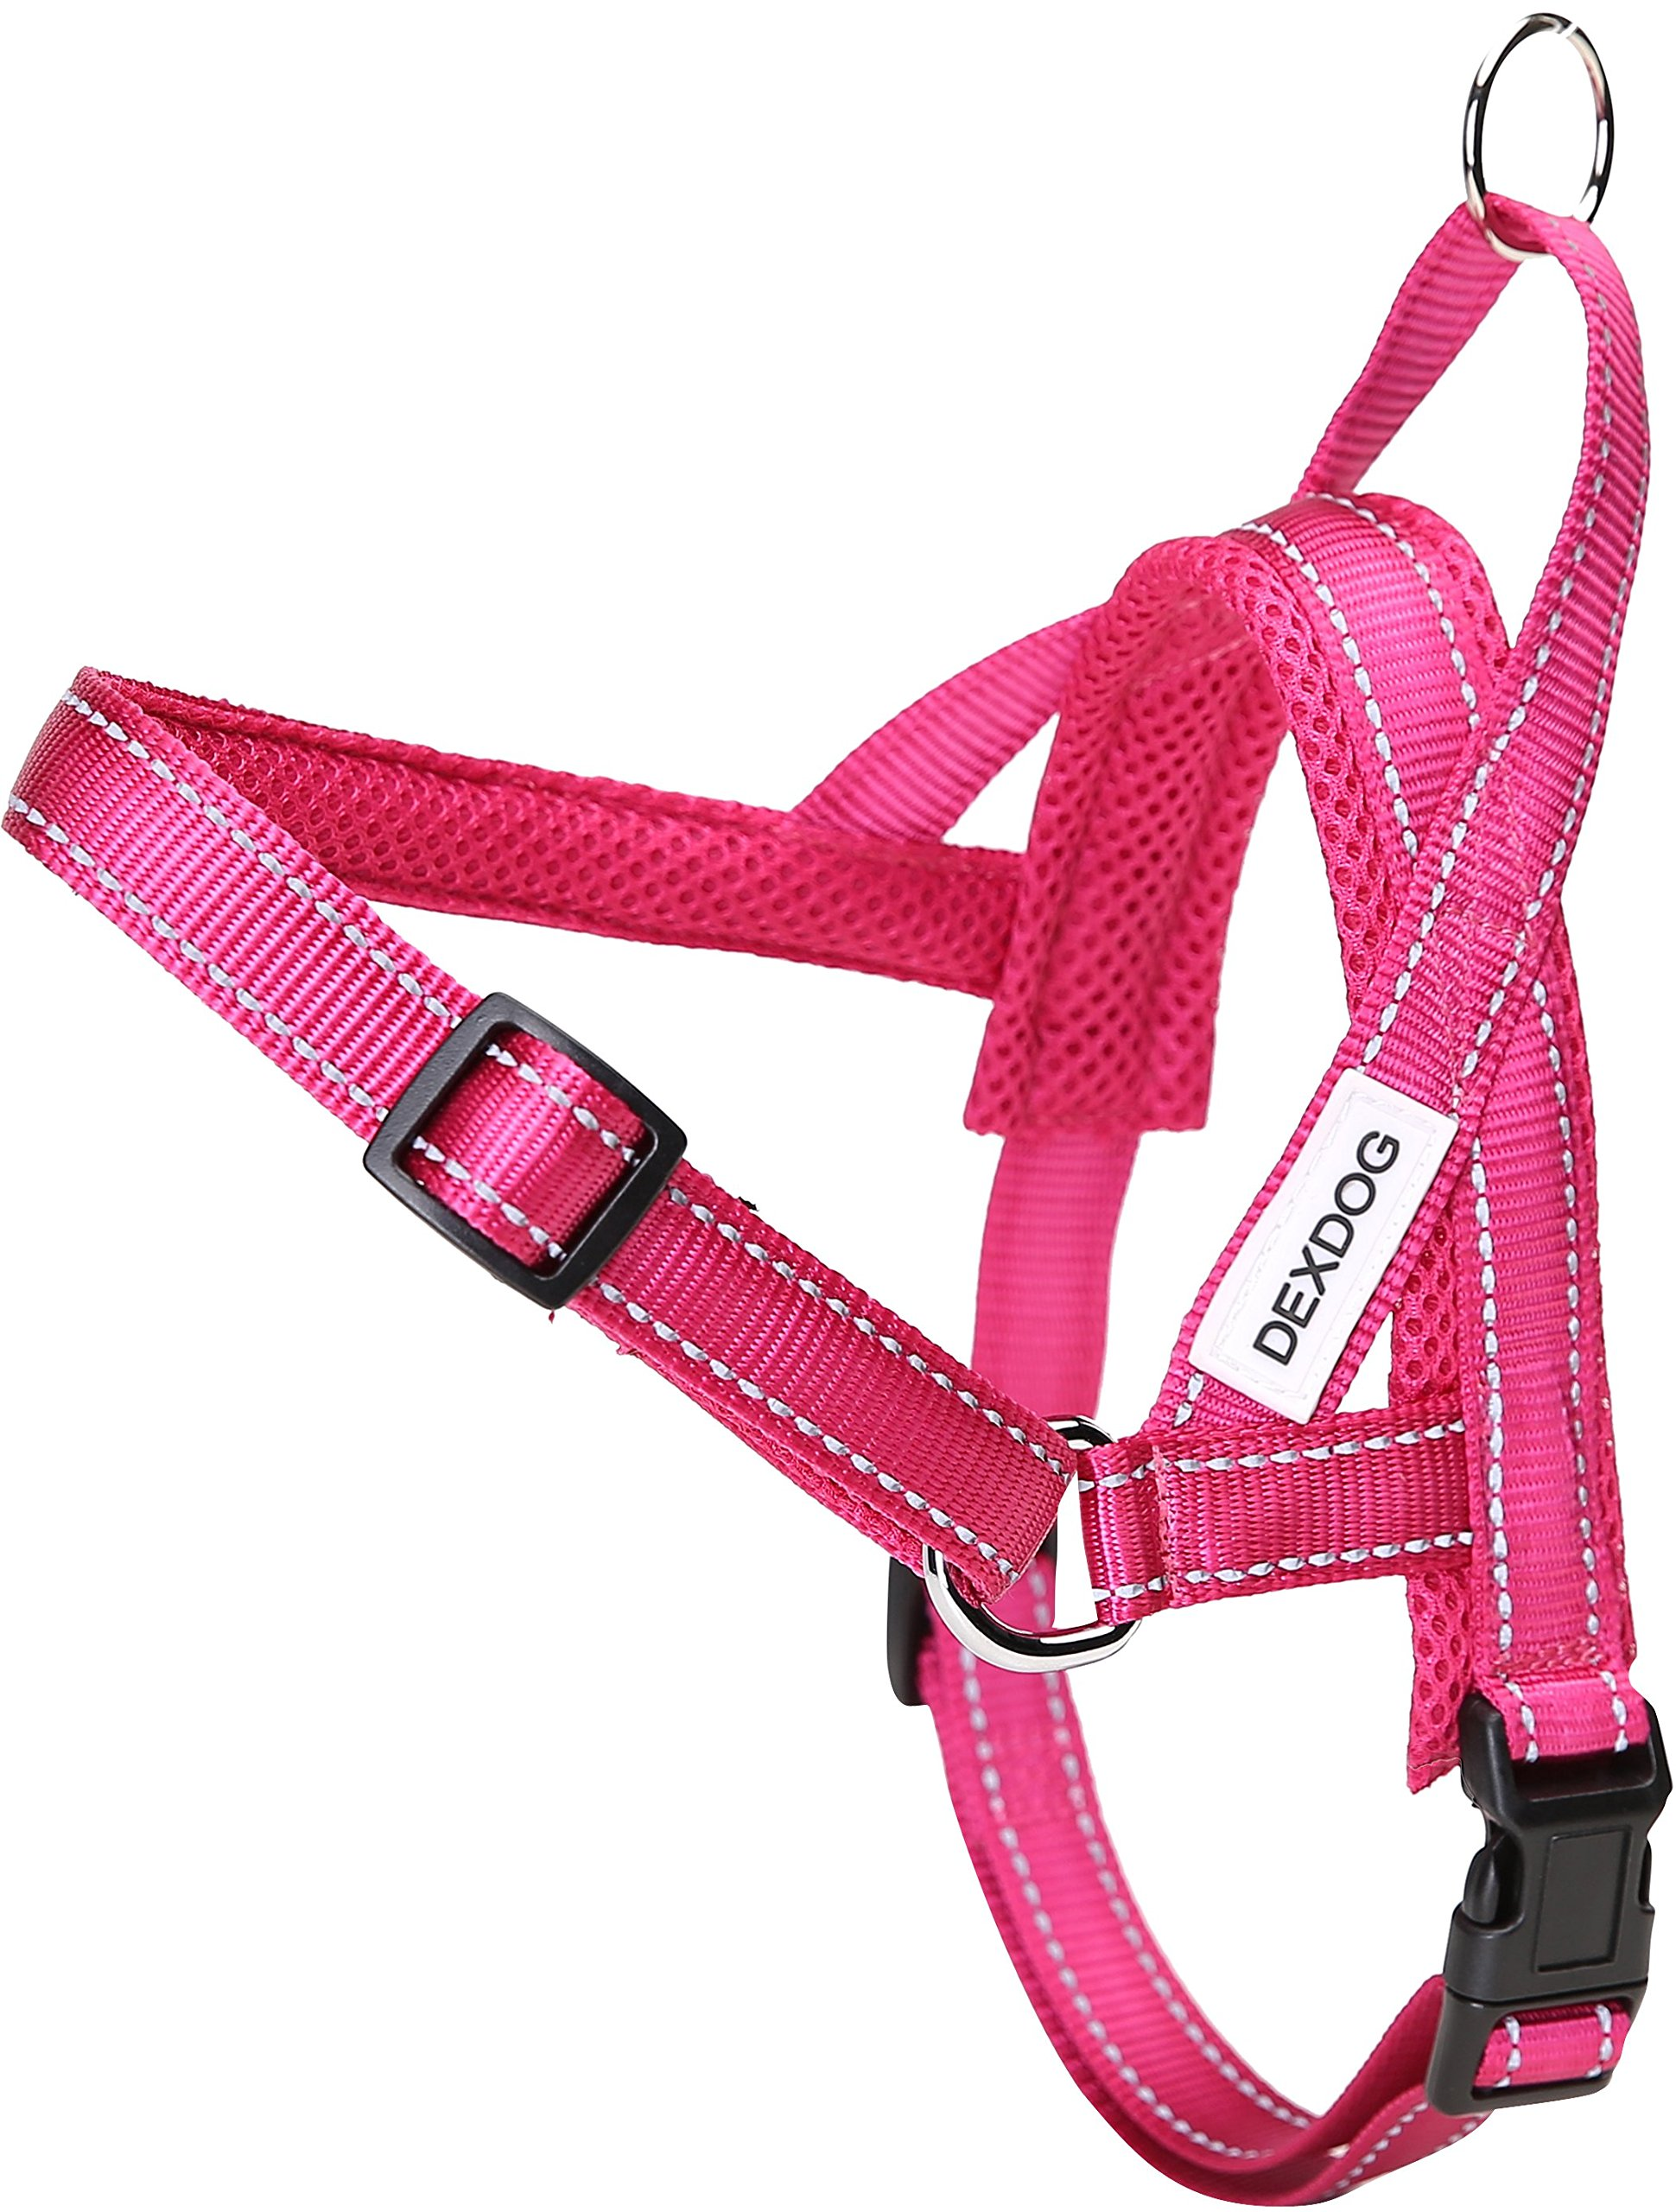 DEXDOG #1 Best Dog Harness — EZHarness On/Off Walk in Seconds! [Pink X-Small XS X-S] — Easy Quicker Step in Dog Harness Vest — Puppy No Pull Reflective Mesh Handle Adjustable Training